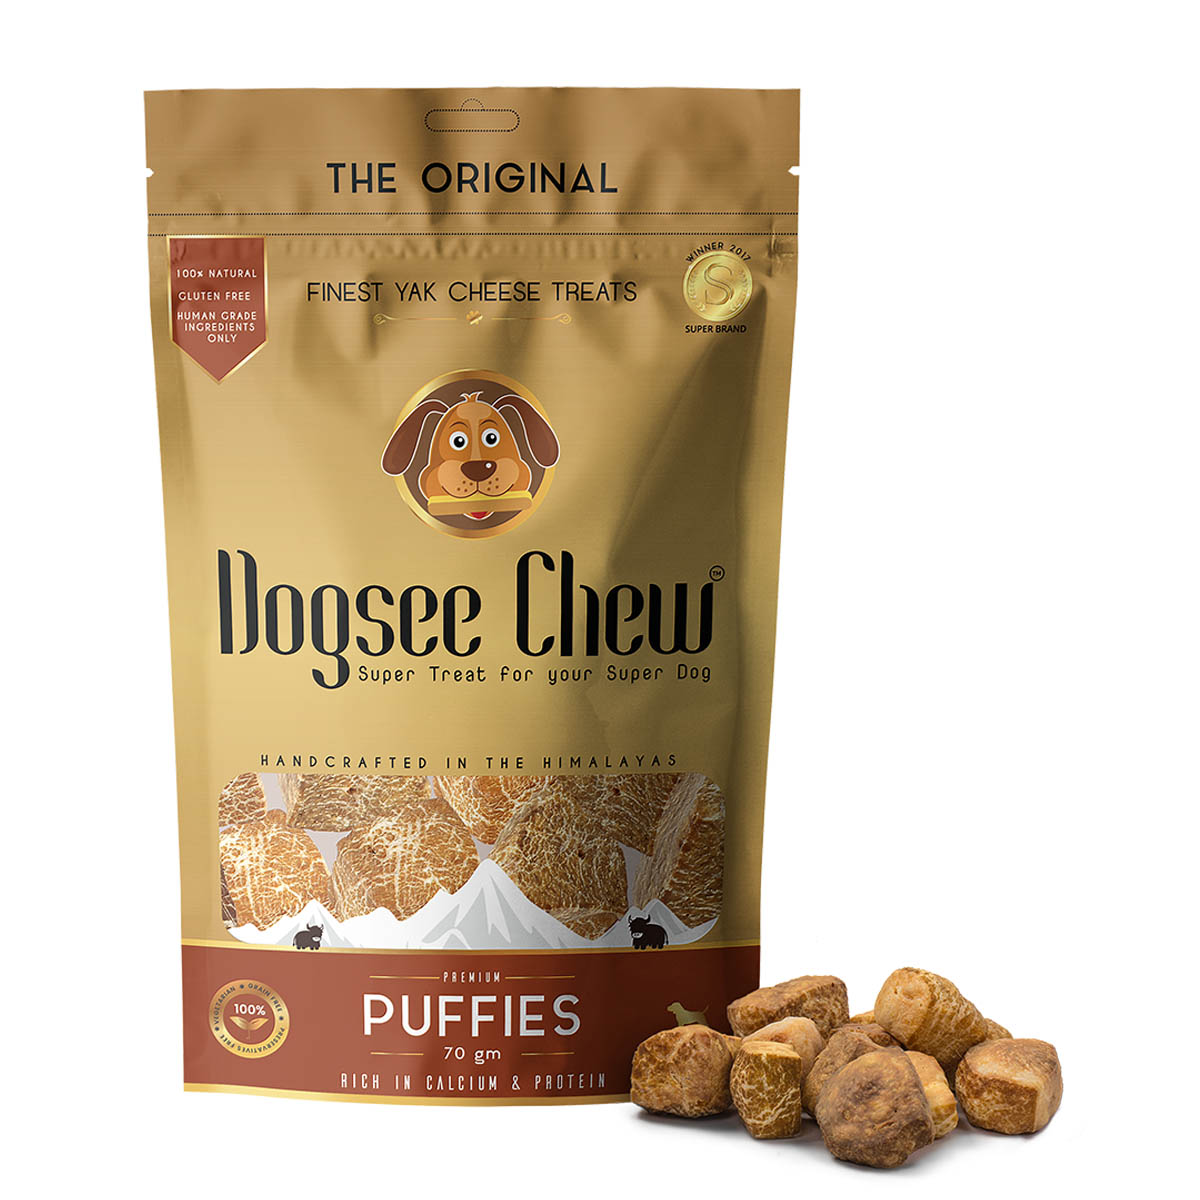 Dogsee Chew Puffies 70gm